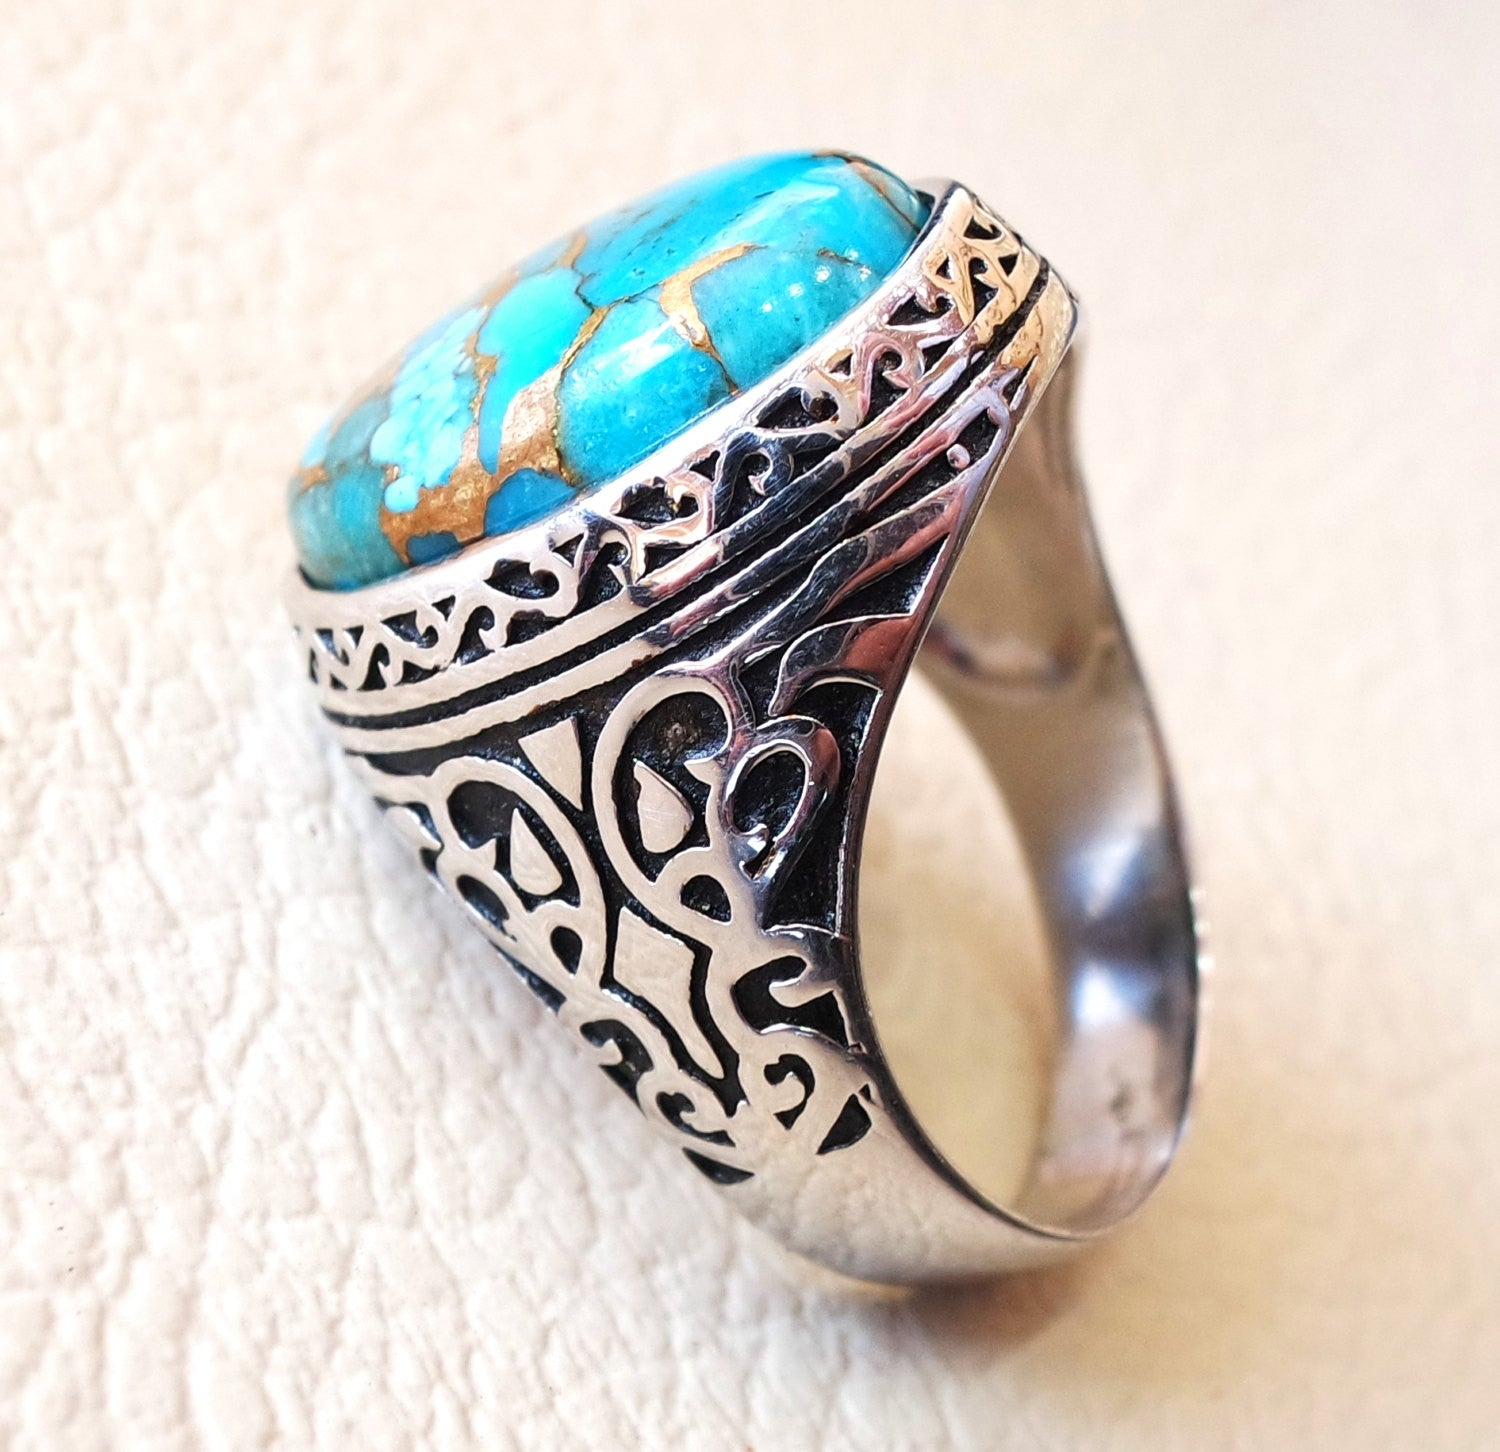 man ring copper turquoise natural stone sterling silver 925 oval cabochon semi precious gem ottoman arabic style all sizes jewelry